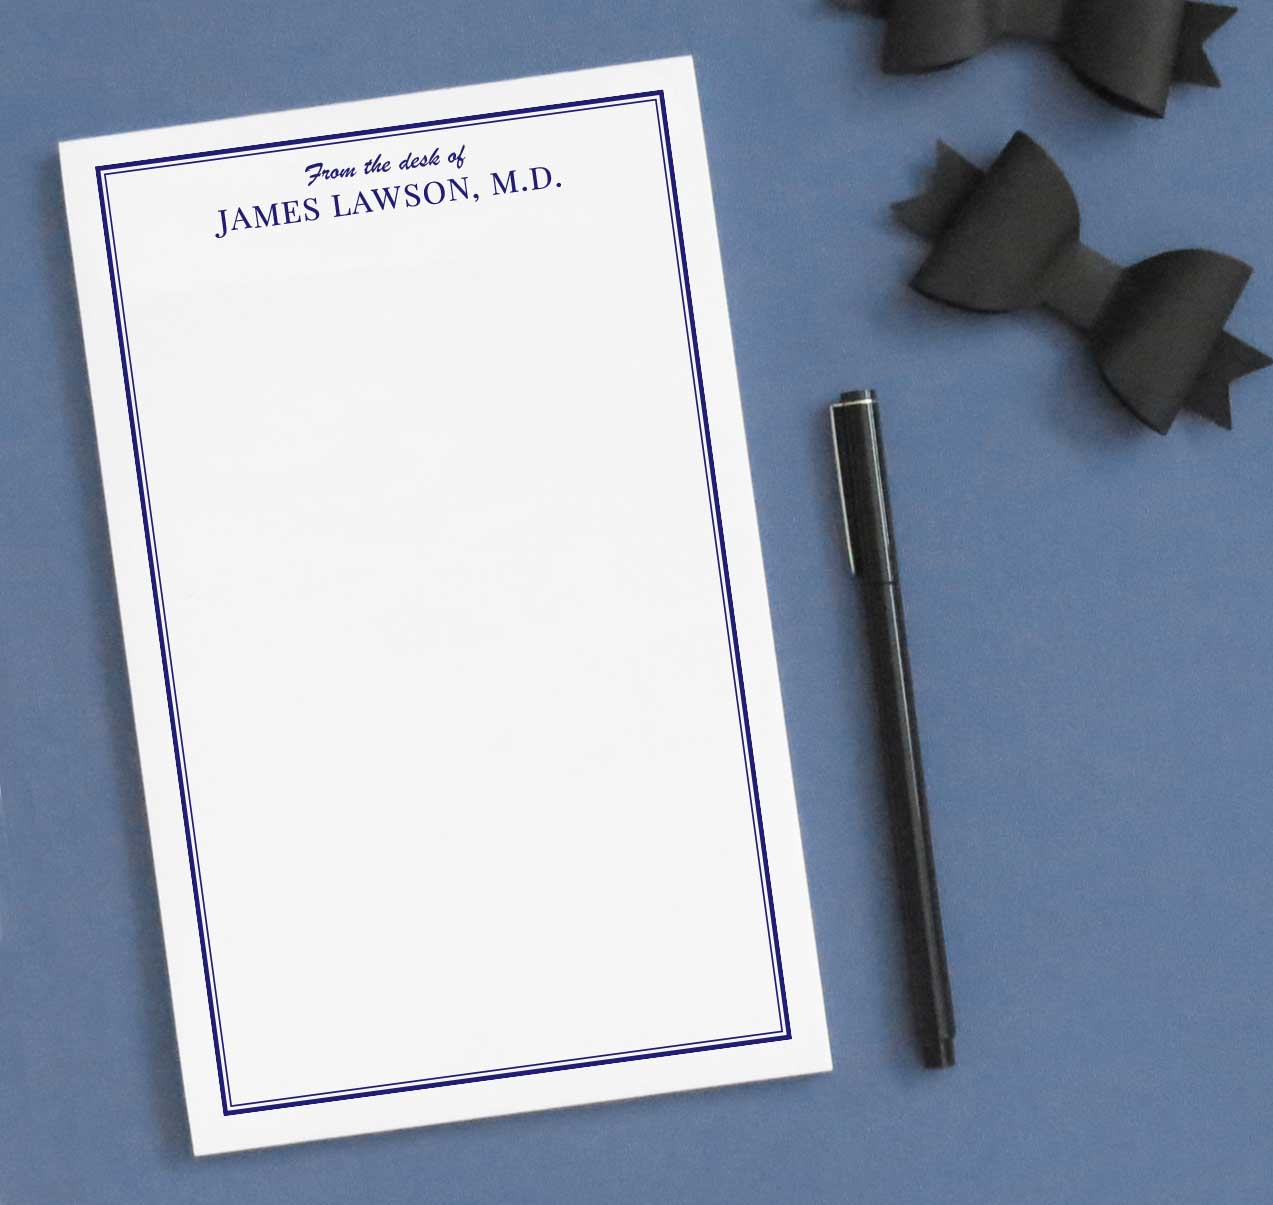 NP076 from the desk of personalized note pad for men and women letter writing stationery 1